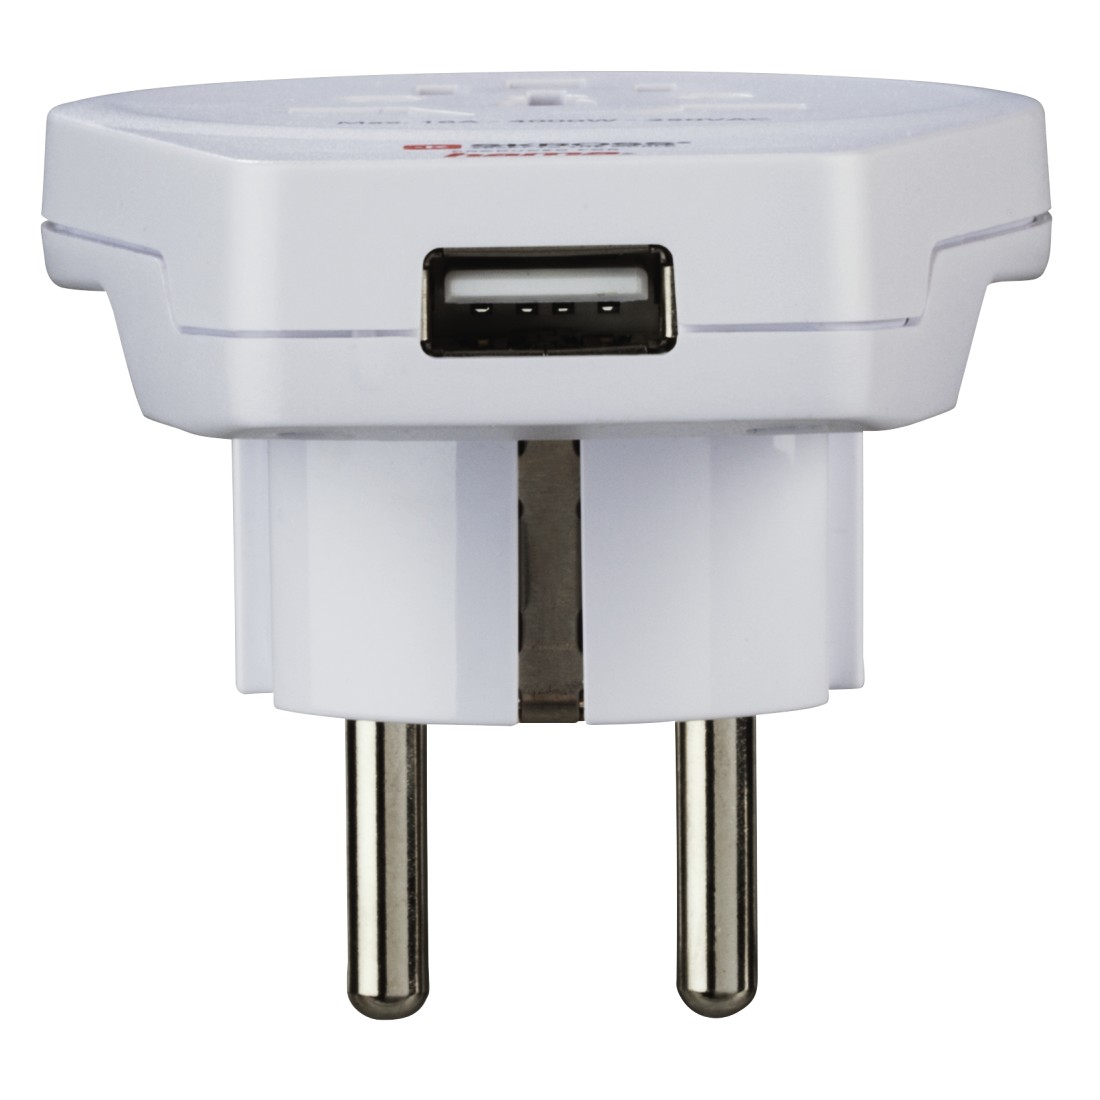 "dex3 High-Res Detail 3 - Hama, ""World to Europe USB"" Universal Travel Adapter Plug"